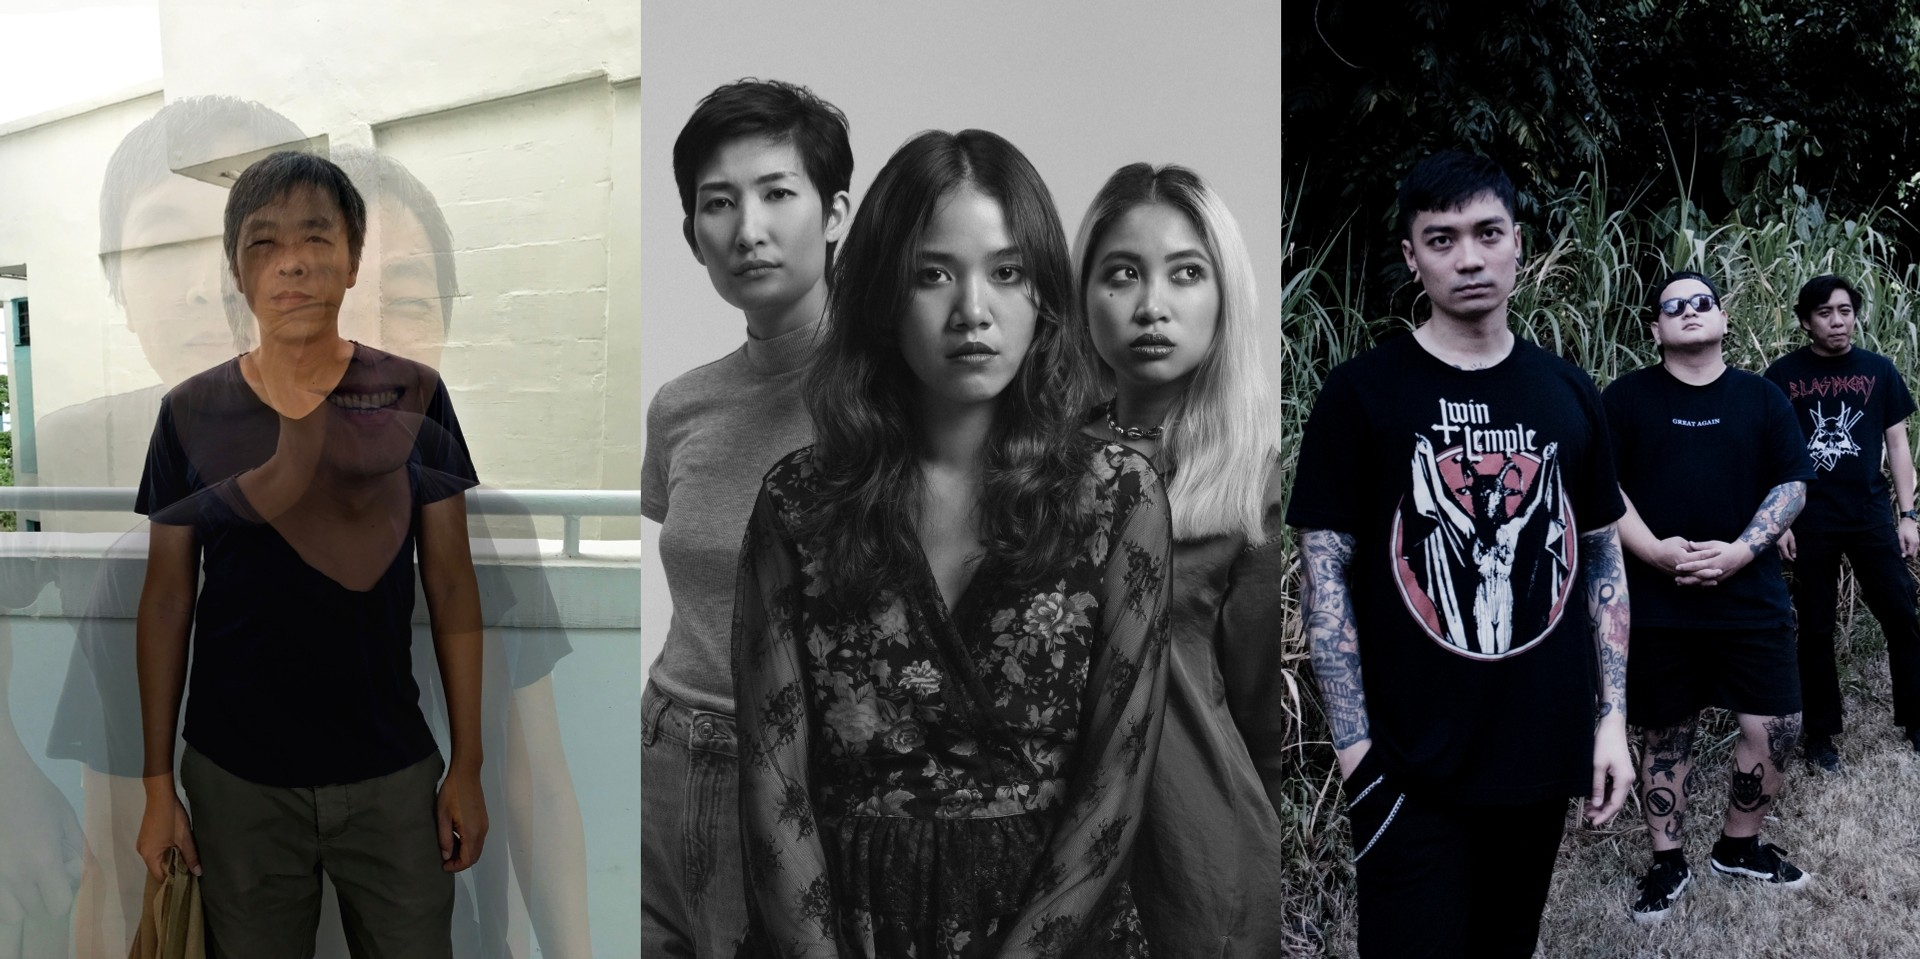 Leslie Low, Yellow Fang, Blood Pact and more to play Rocking the Region 2019